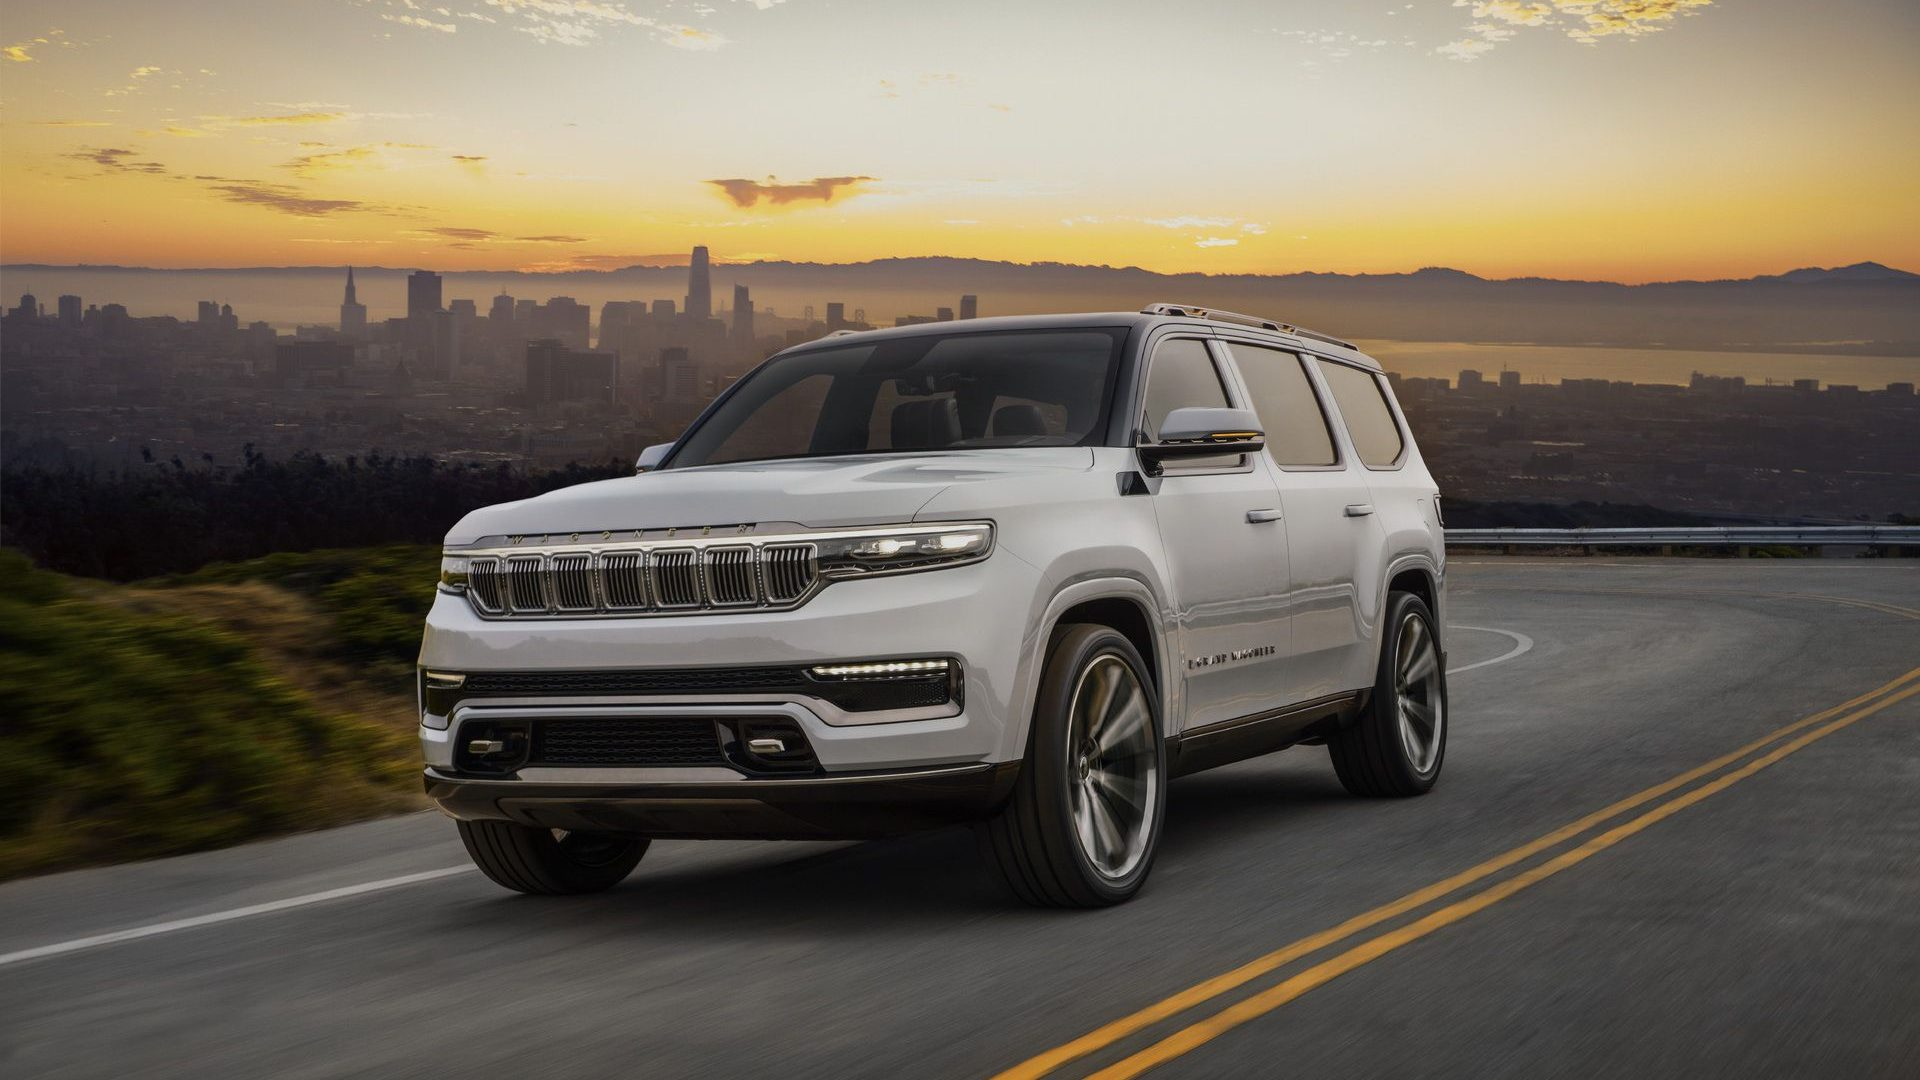 2020-Jeep-Grand-Wagoneer-Concept-01